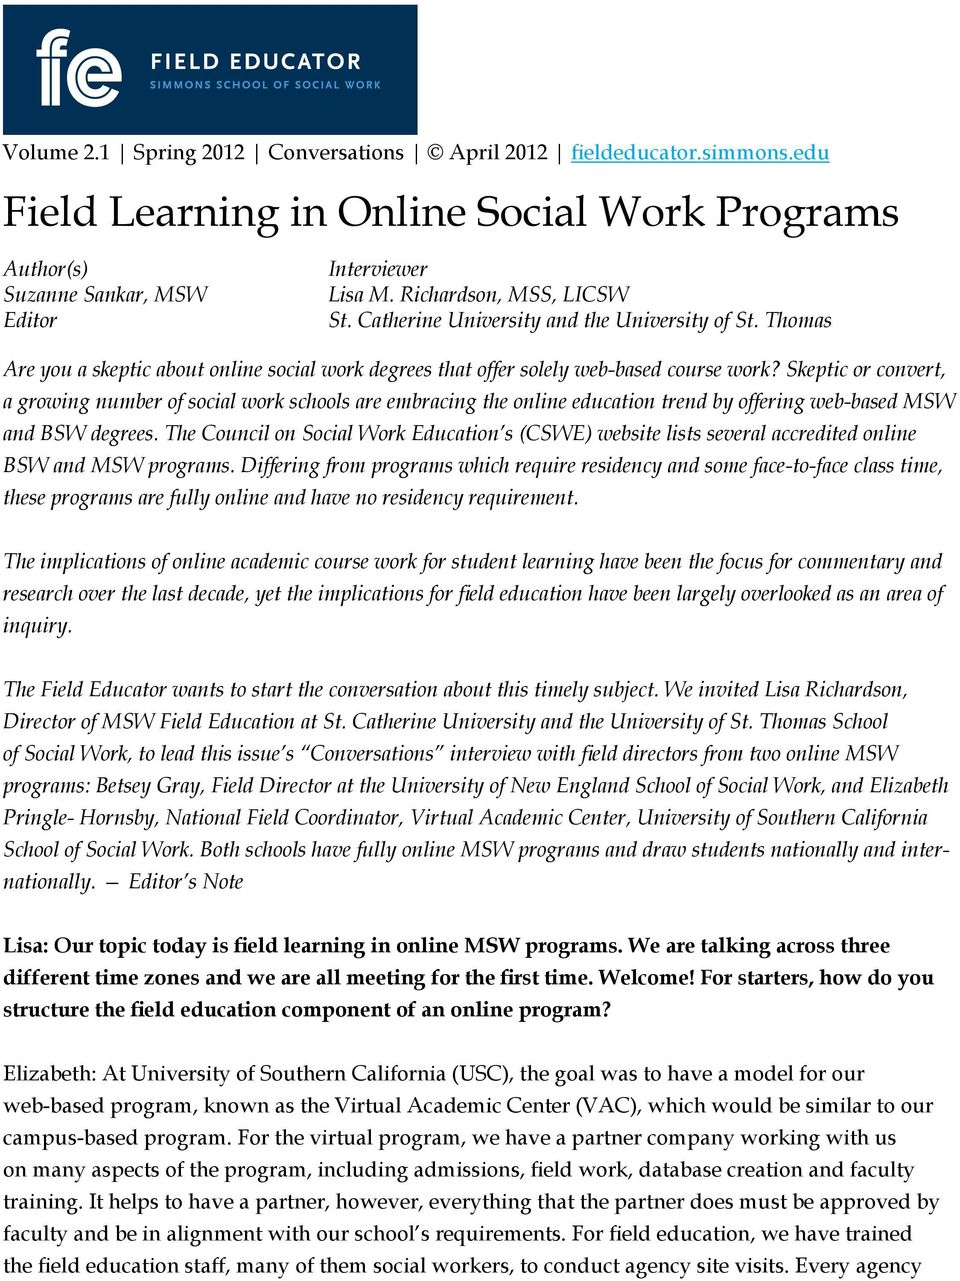 Skeptic or convert, a growing number of social work schools are embracing the online education trend by offering web-based MSW and BSW degrees.